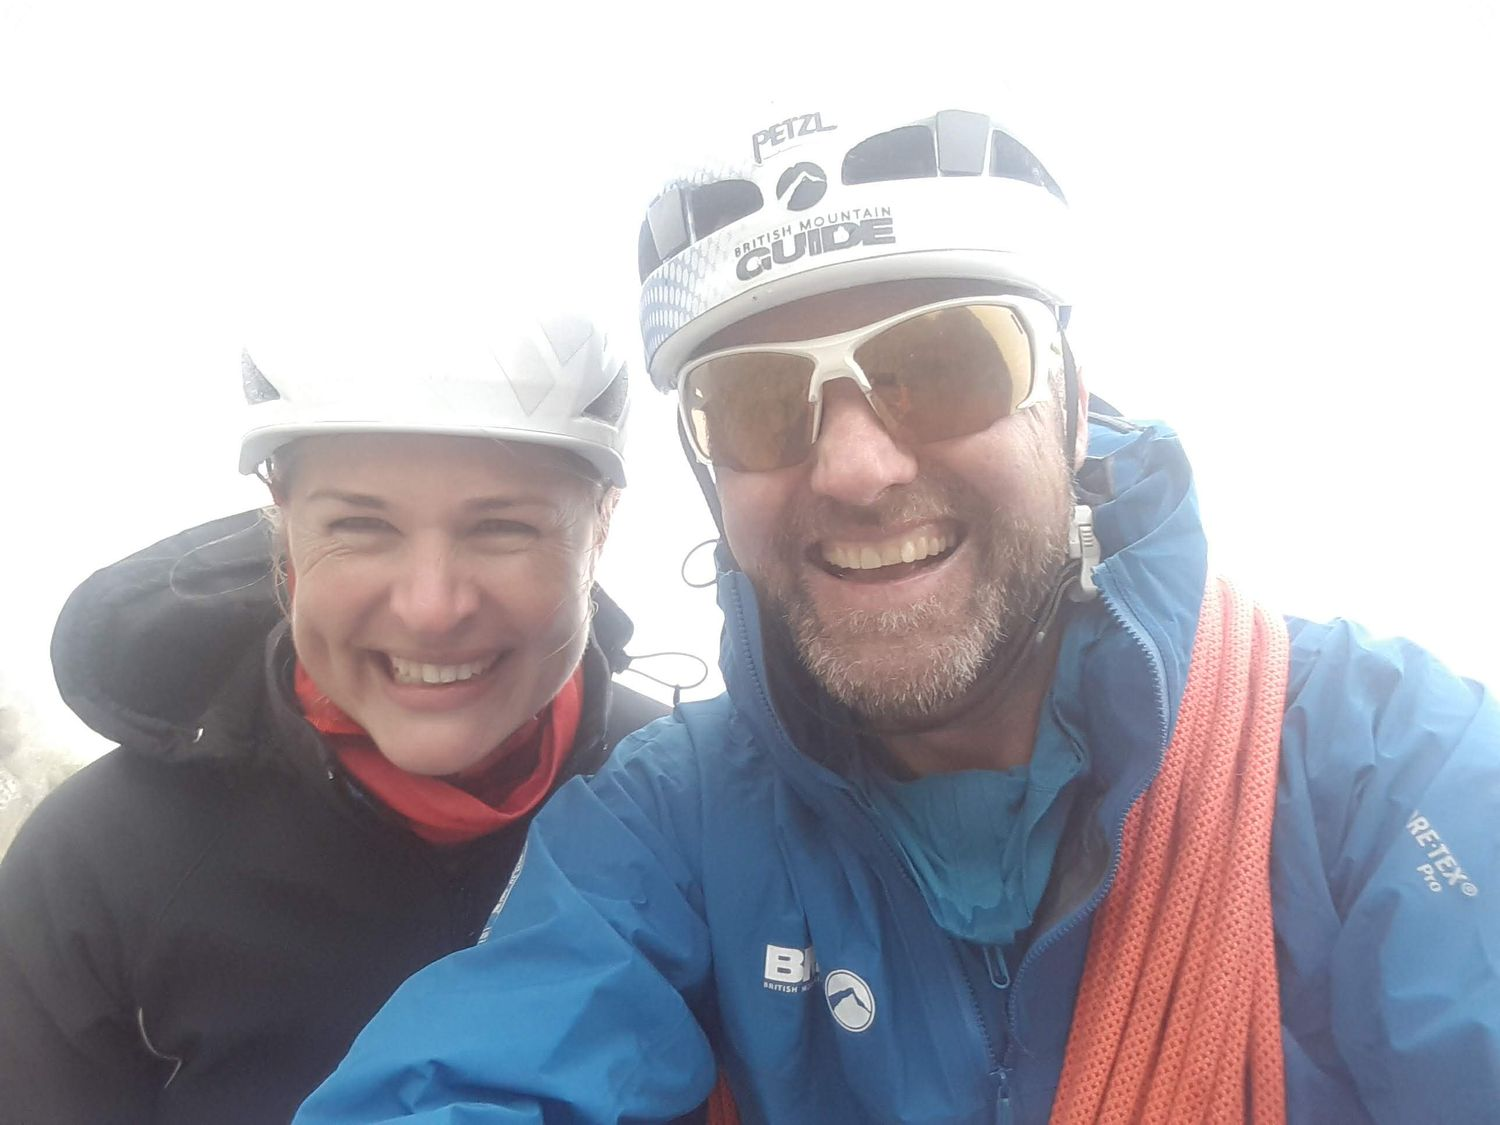 July: Alpine guiding, including summiting the Matterhorn with Kate Baecher